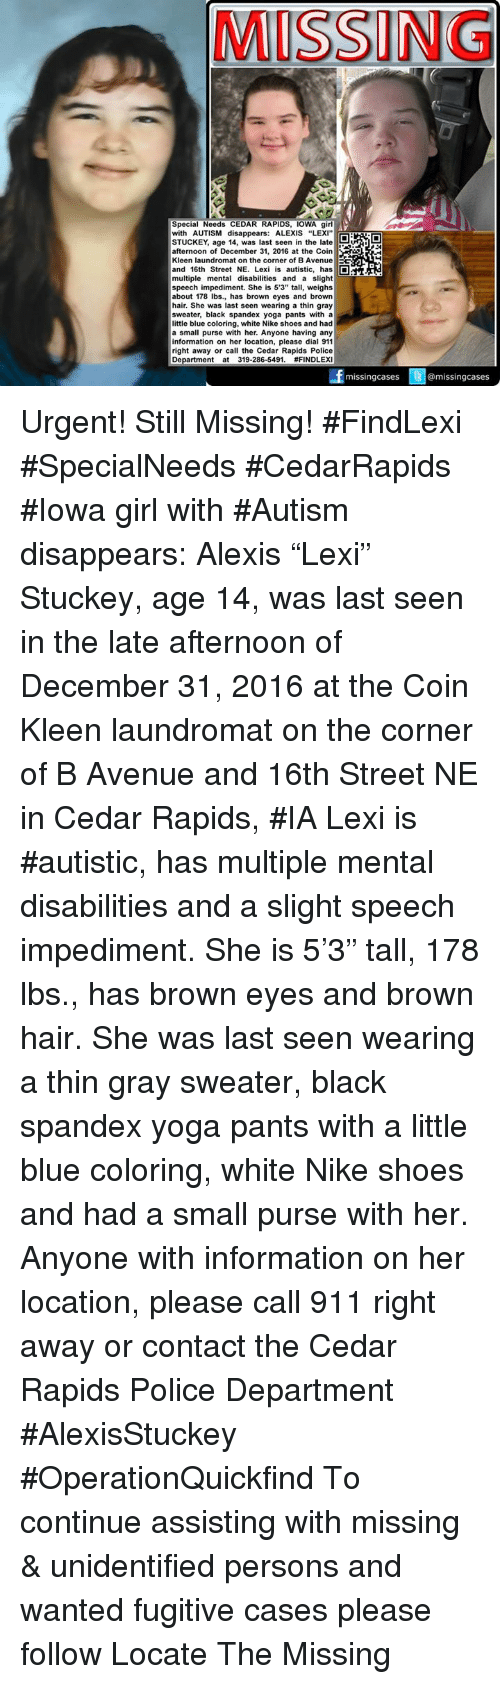 "Brown Eye: MISSING  Special Needs CEDAR RAPIDS, IOWA girl  with AUTISM disappears: ALEXIS ""LEXI""  STUCKEY, age 14, was last seen in the late  afternoon of December 31, 2016 at the Coin  Kleen laundromat on the corner of BAvenue EE  and 16th Street NE. Lexi is autistic, has  D  multiple mental disabilities and a slight  speech impediment. She is 5'3"" tall, weighs  about 178 lbs., has brown eyes and brown  hair. She was last seen wearing a thin gray  sweater, black spandex yoga pants with a  little blue coloring, white Nike shoes and had  a small purse with her. Anyone having any  information on her location, please dial 911  right away or call the Cedar Rapids Police  Department at 319-286-5491.  #FINDLEX  missing cases  @missing cases Urgent! Still Missing! #FindLexi #SpecialNeeds #CedarRapids #Iowa girl with #Autism disappears: Alexis ""Lexi"" Stuckey, age 14, was last seen in the late afternoon of December 31, 2016 at the Coin Kleen laundromat on the corner of B Avenue and 16th Street NE in Cedar Rapids, #IA  Lexi is #autistic, has multiple mental disabilities and a slight speech impediment. She is 5'3"" tall, 178 lbs., has brown eyes and brown hair. She was last seen wearing a thin gray sweater, black spandex yoga pants with a little blue coloring, white Nike shoes and had a small purse with her.   Anyone with information on her location, please call 911 right away or contact the Cedar Rapids Police Department  #AlexisStuckey #OperationQuickfind  To continue assisting with missing & unidentified persons and wanted fugitive cases please follow Locate The Missing"